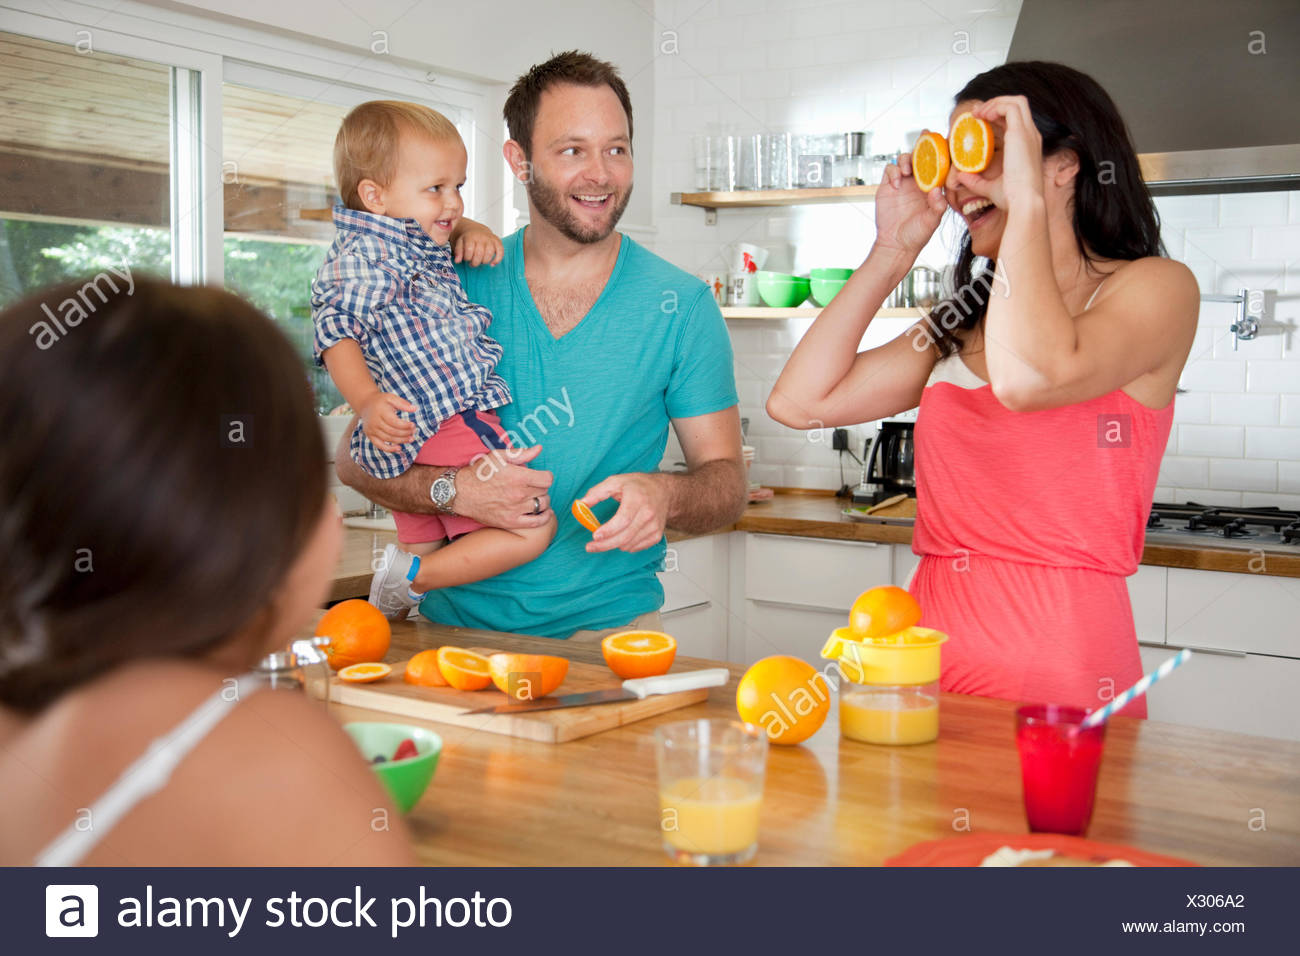 Mother making a face with oranges for her family at breakfast bar - Stock Image